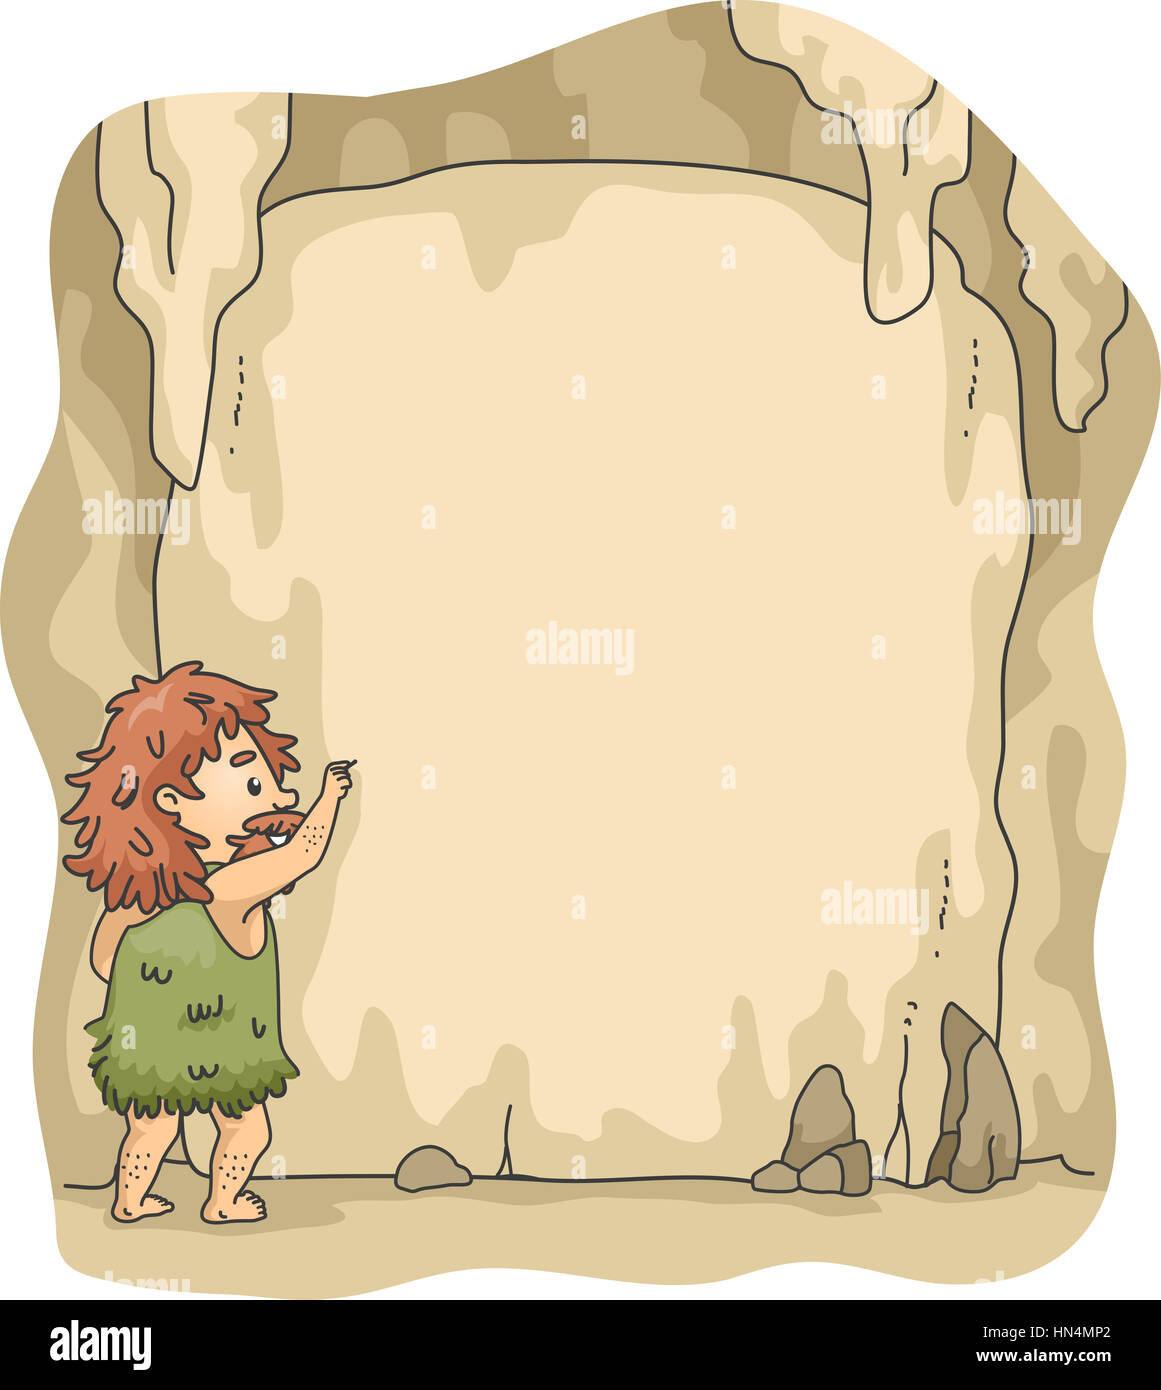 Frame Illustration of a Caveman Writing on Cave Walls Stock Photo ...